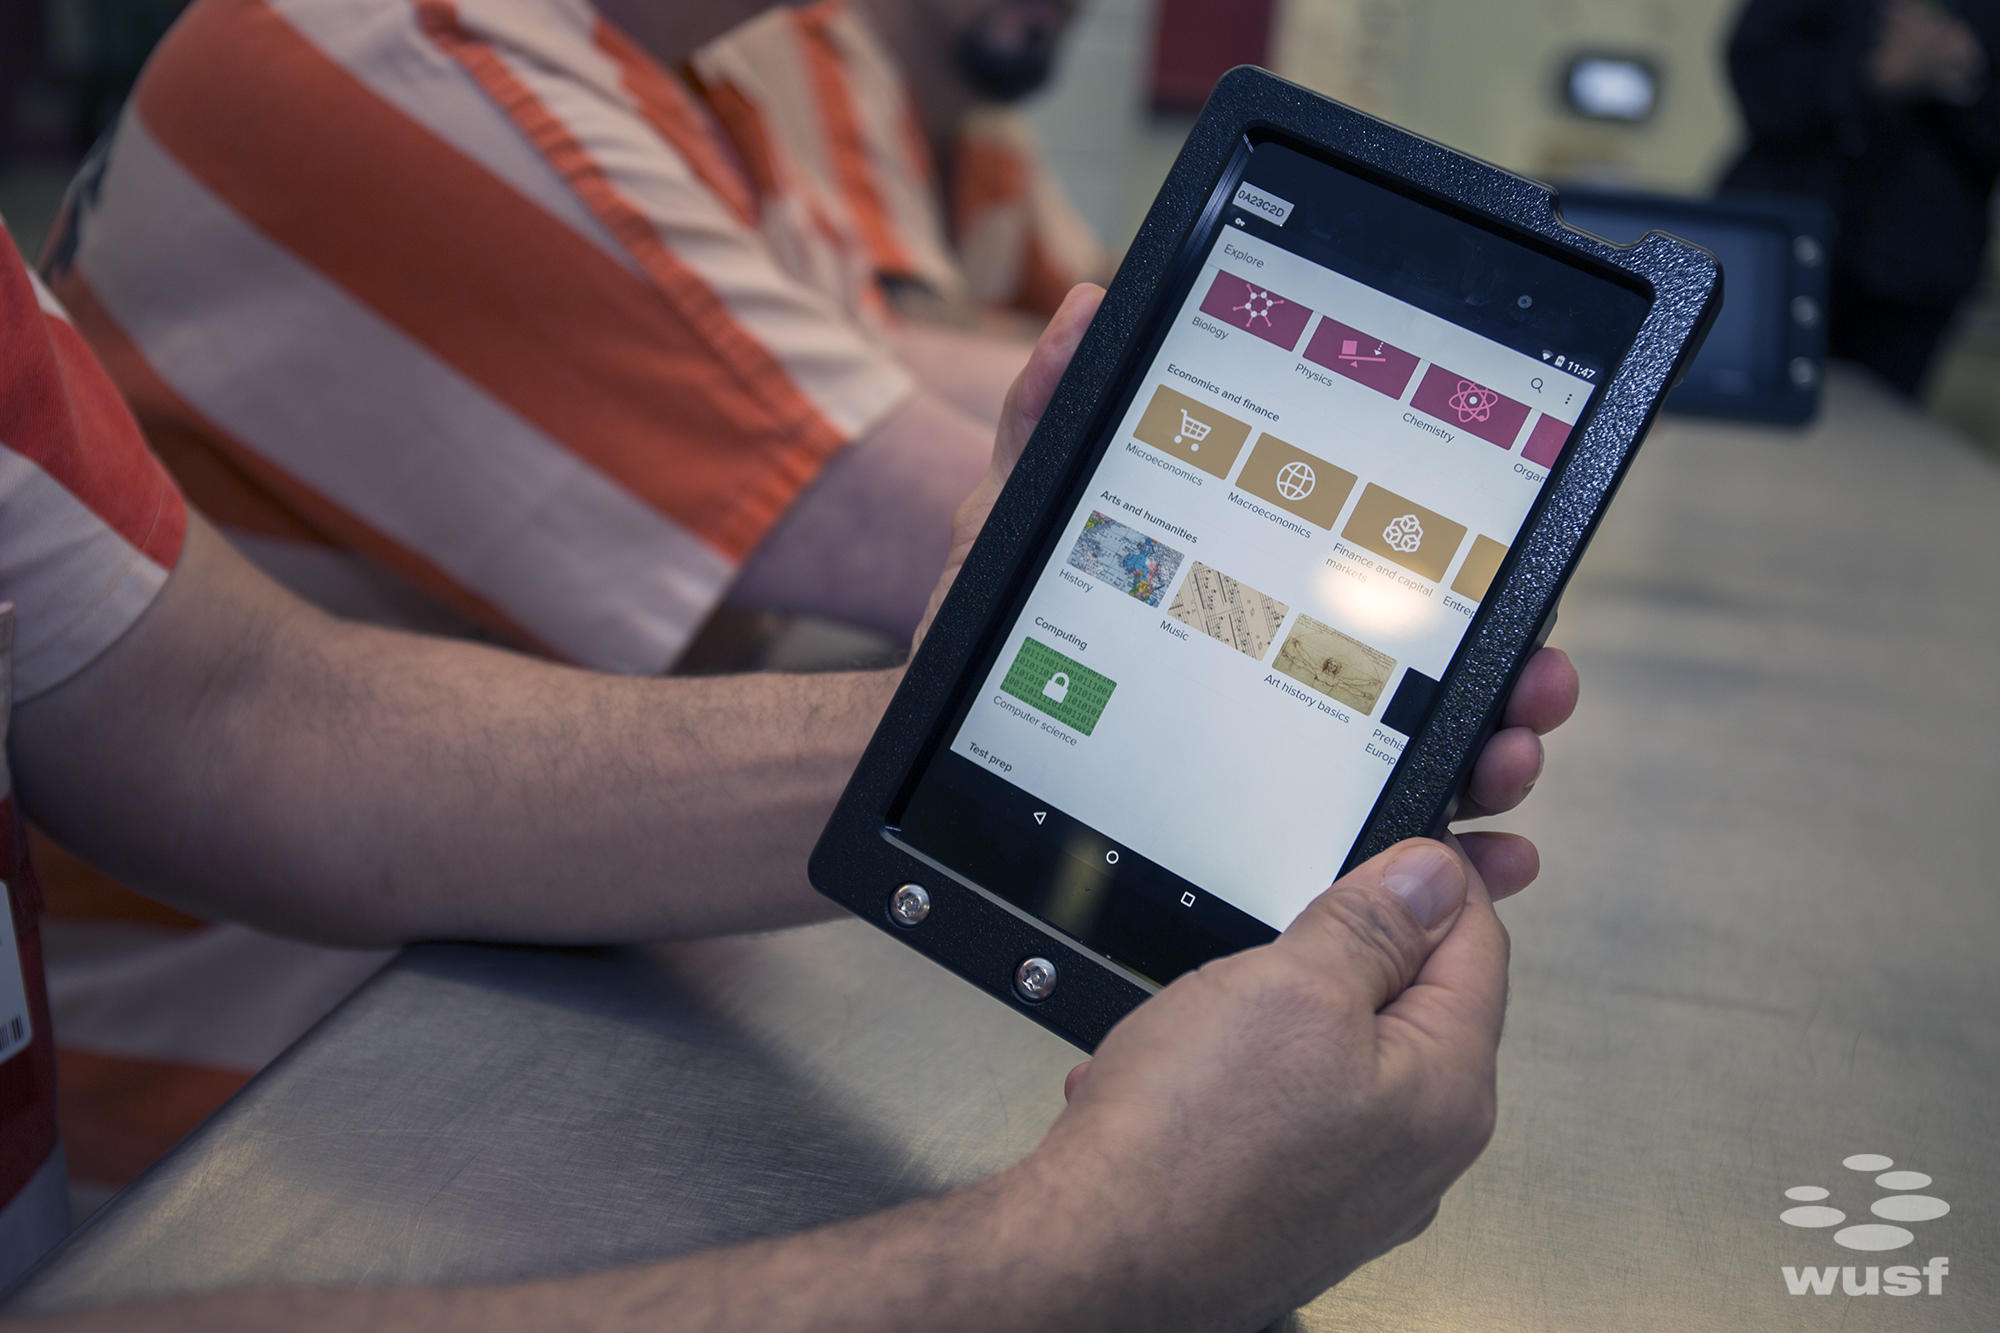 Pasco Inmates Get Tablet Access For Education, Mental Health